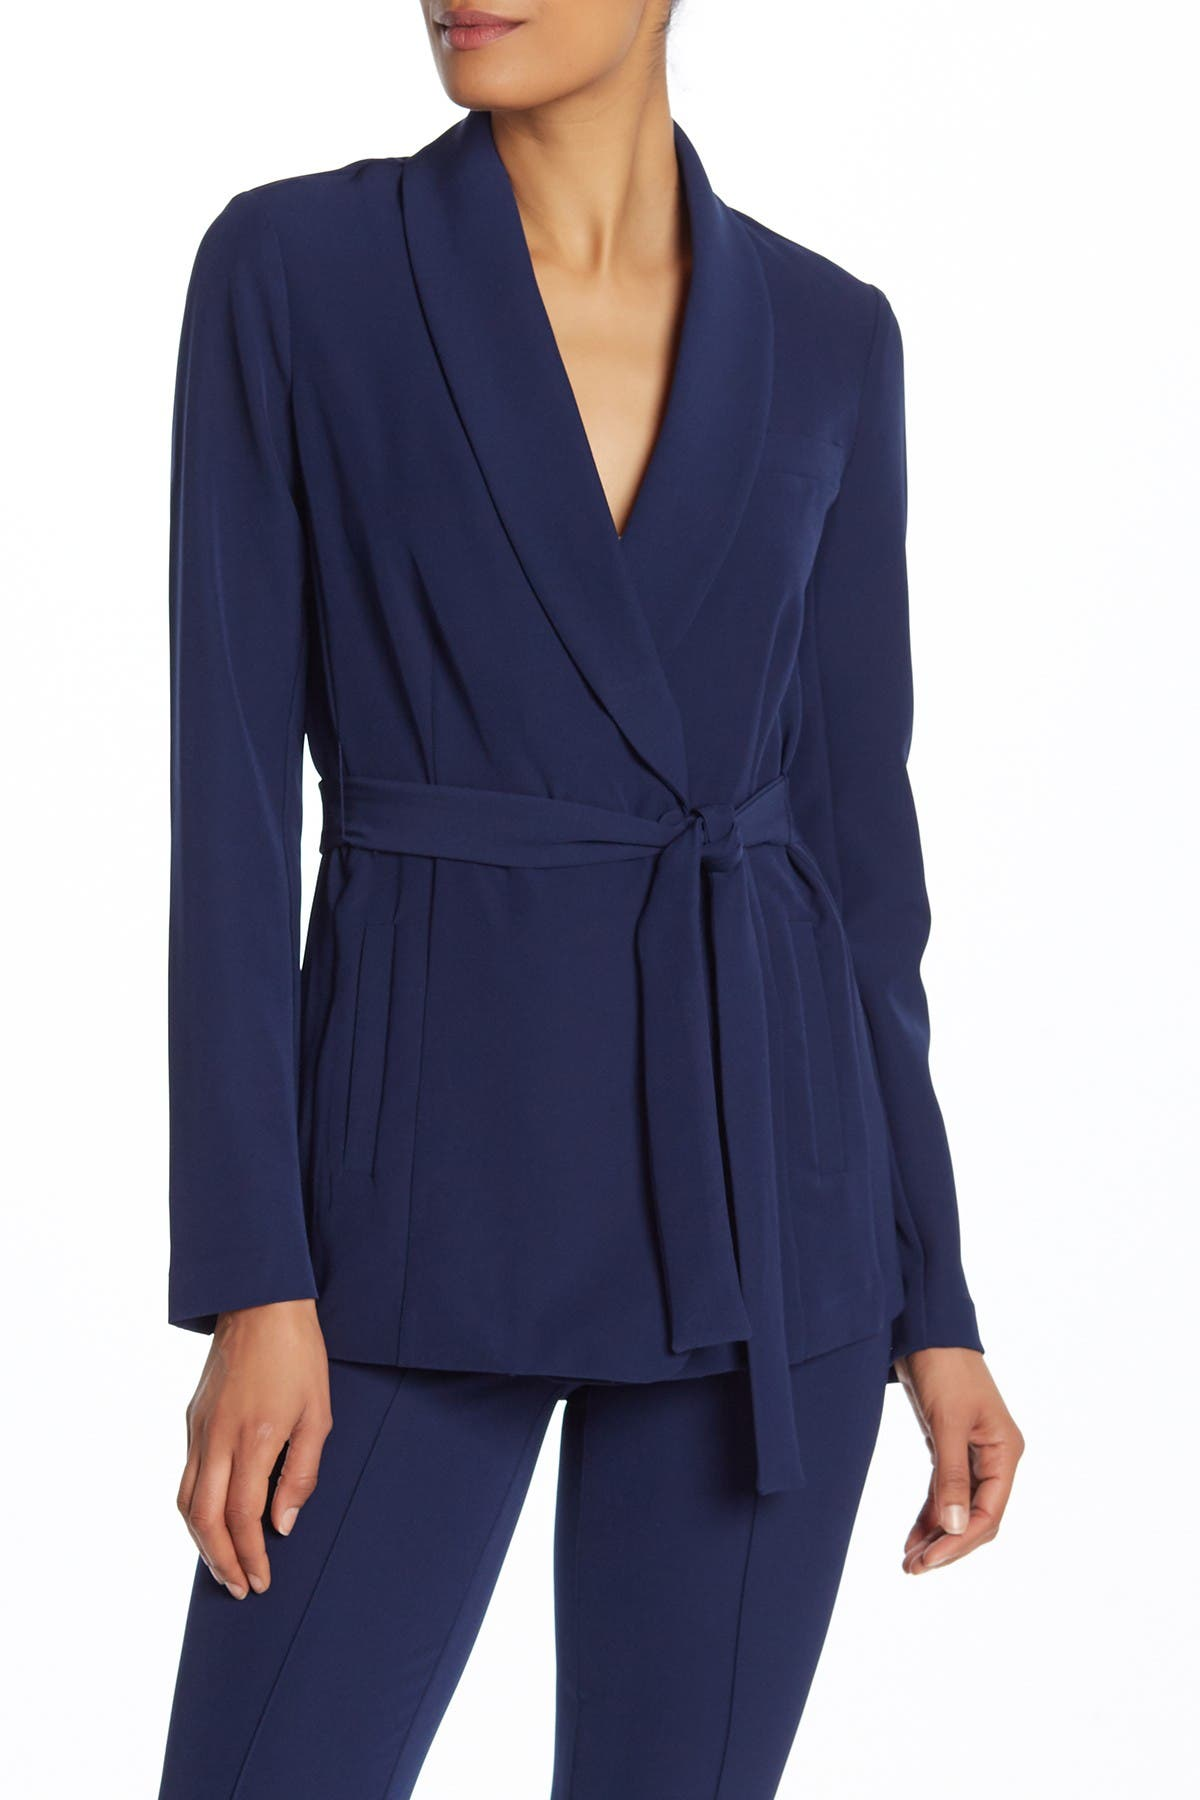 Image of Laundry By Shelli Segal Shawl Collar Jacket